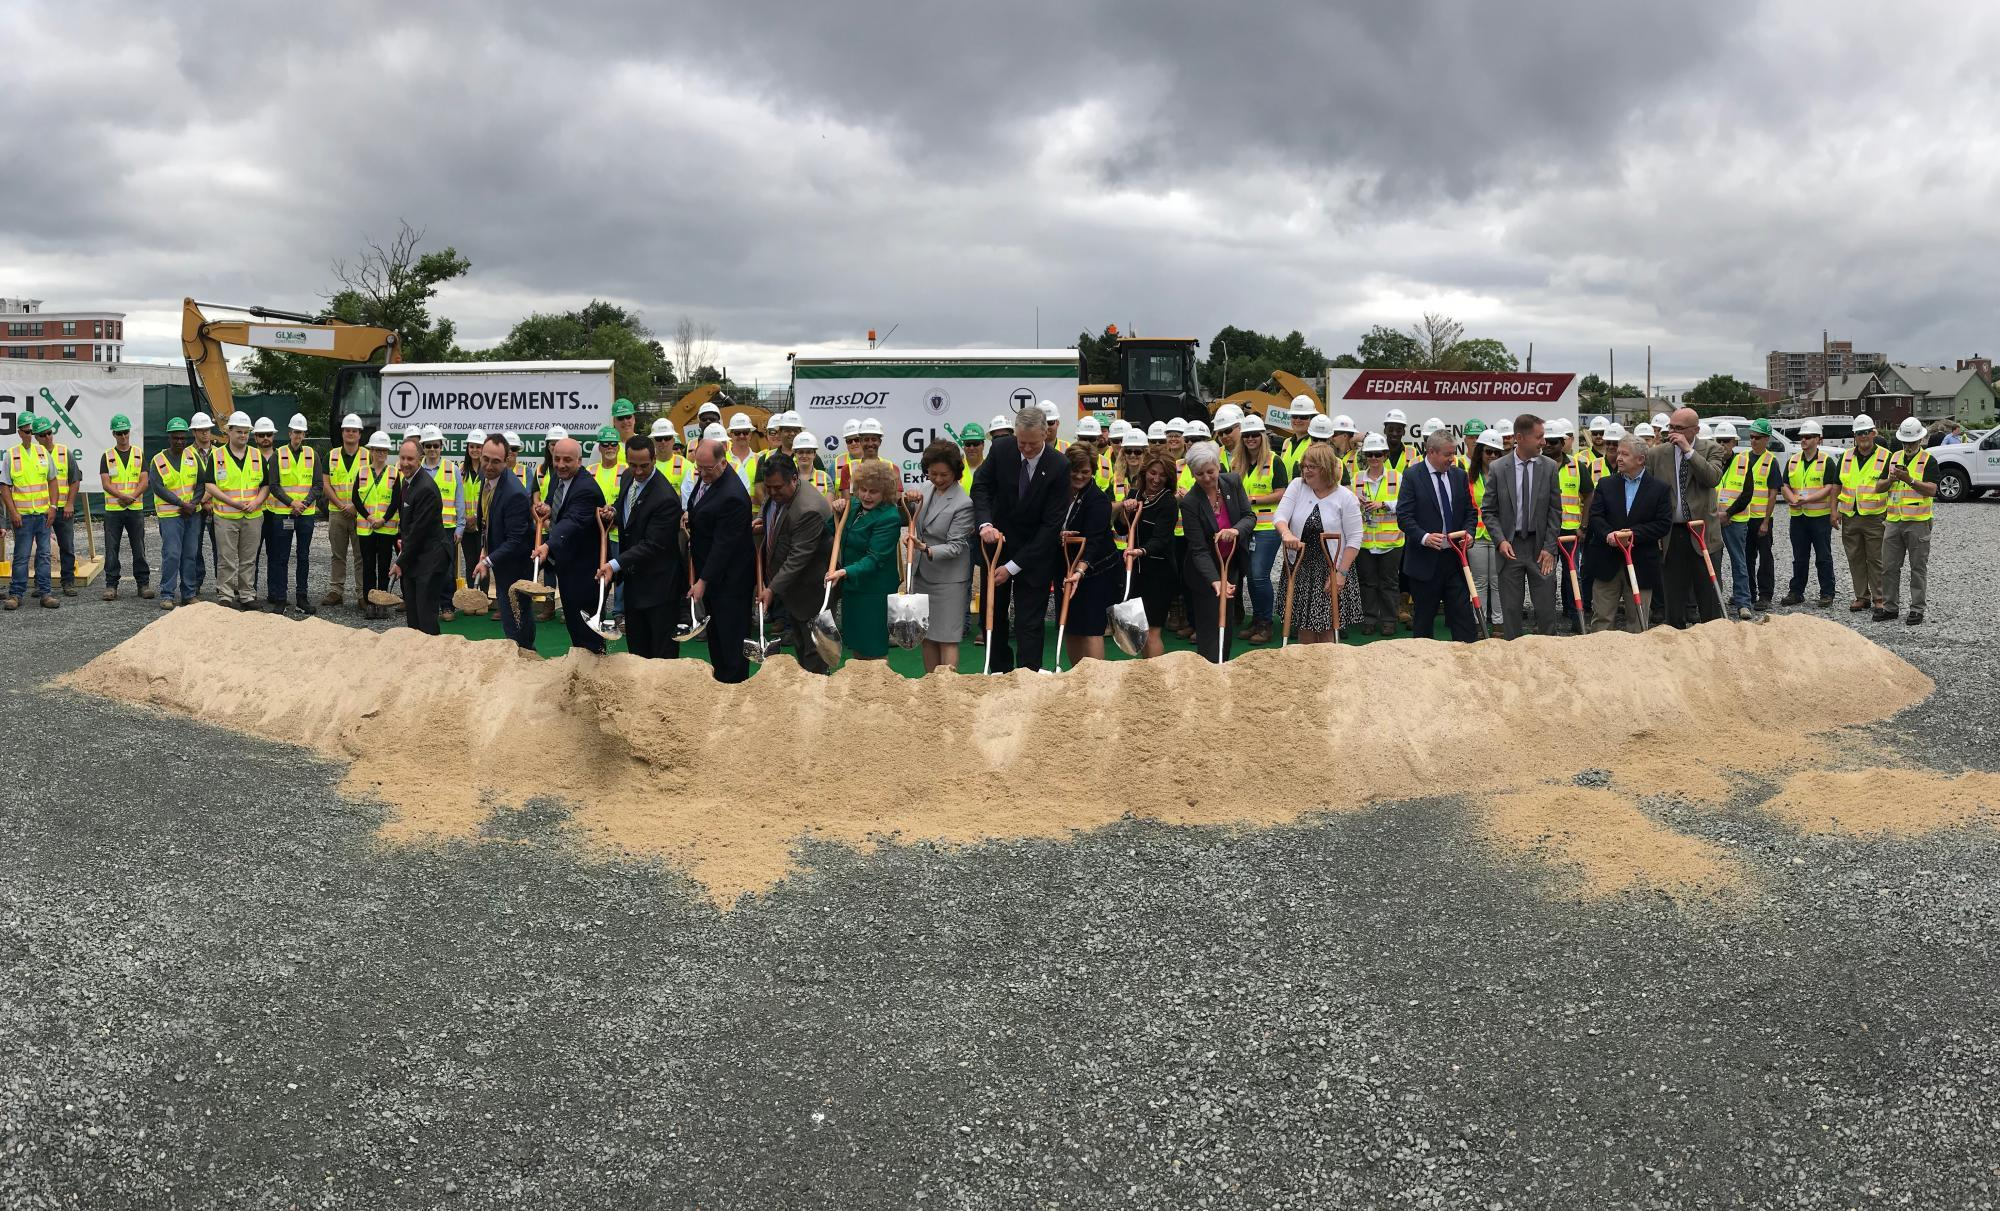 State officials pose with shovels at the Green Line Extension's groundbreaking ceremeony, with construction workings lined up as well